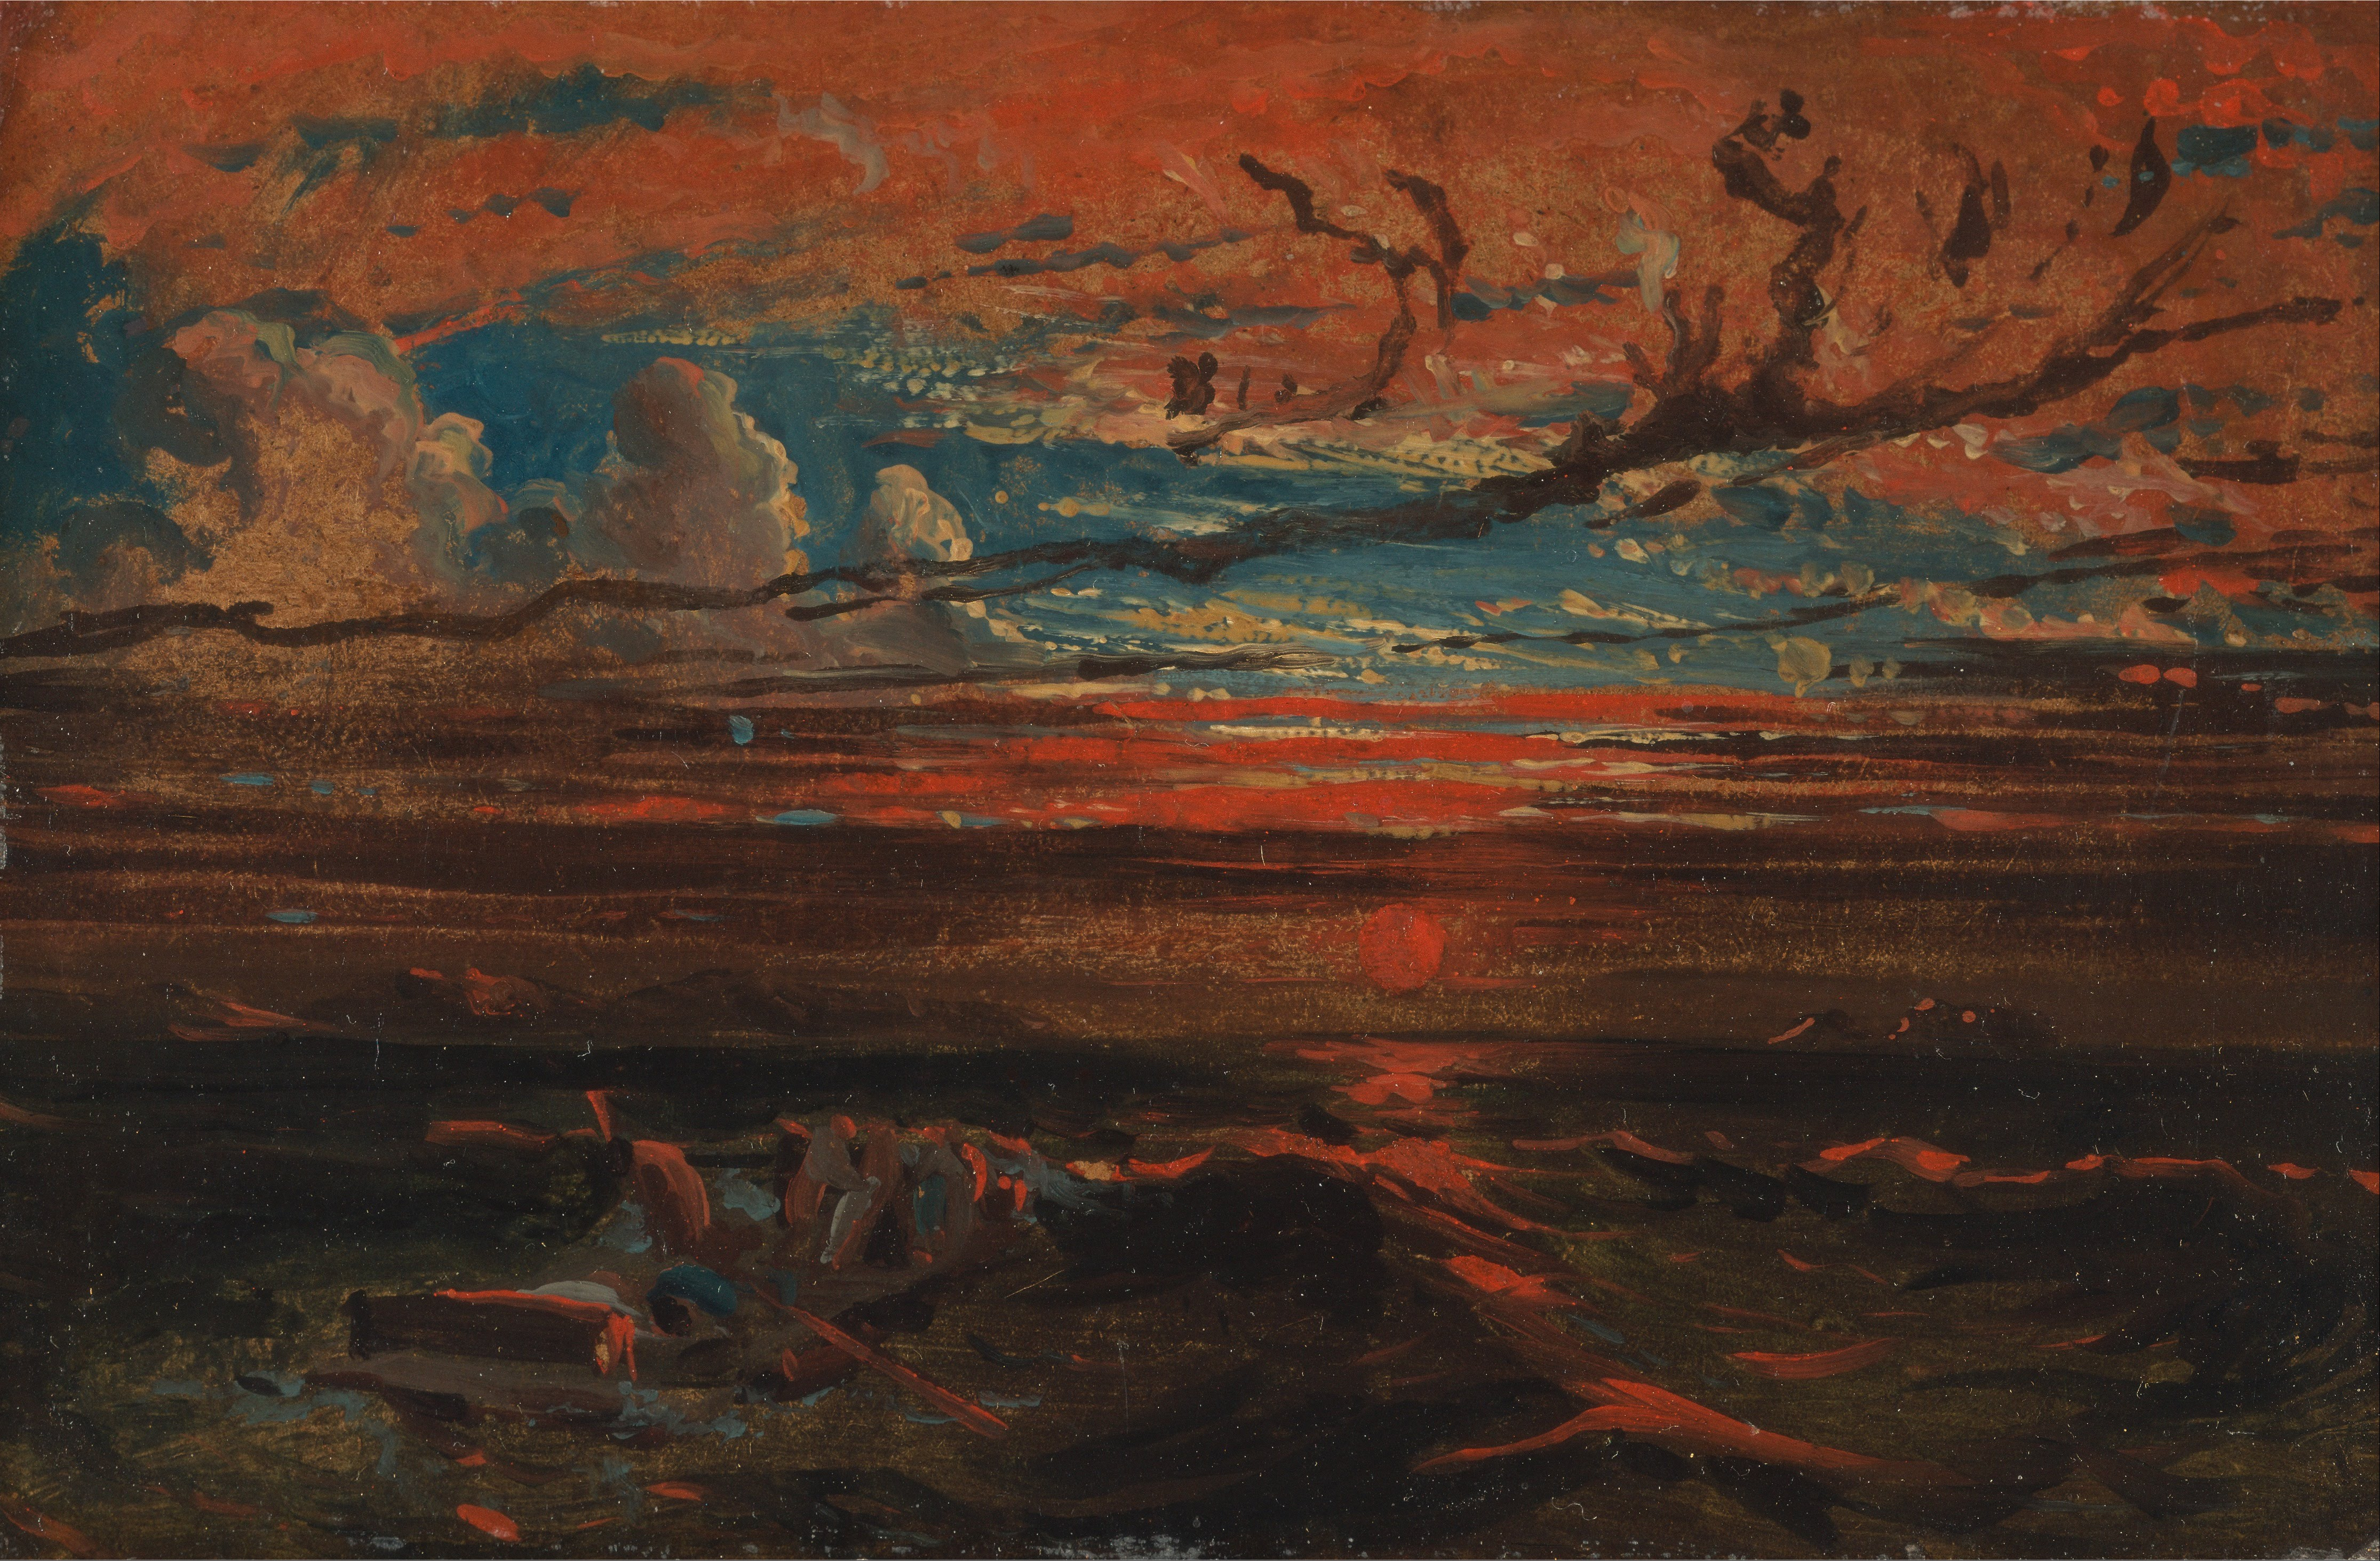 File:Francis Danby - Sunset at Sea after a Storm - Google Art Project ...Acrylic Paintings Sunset